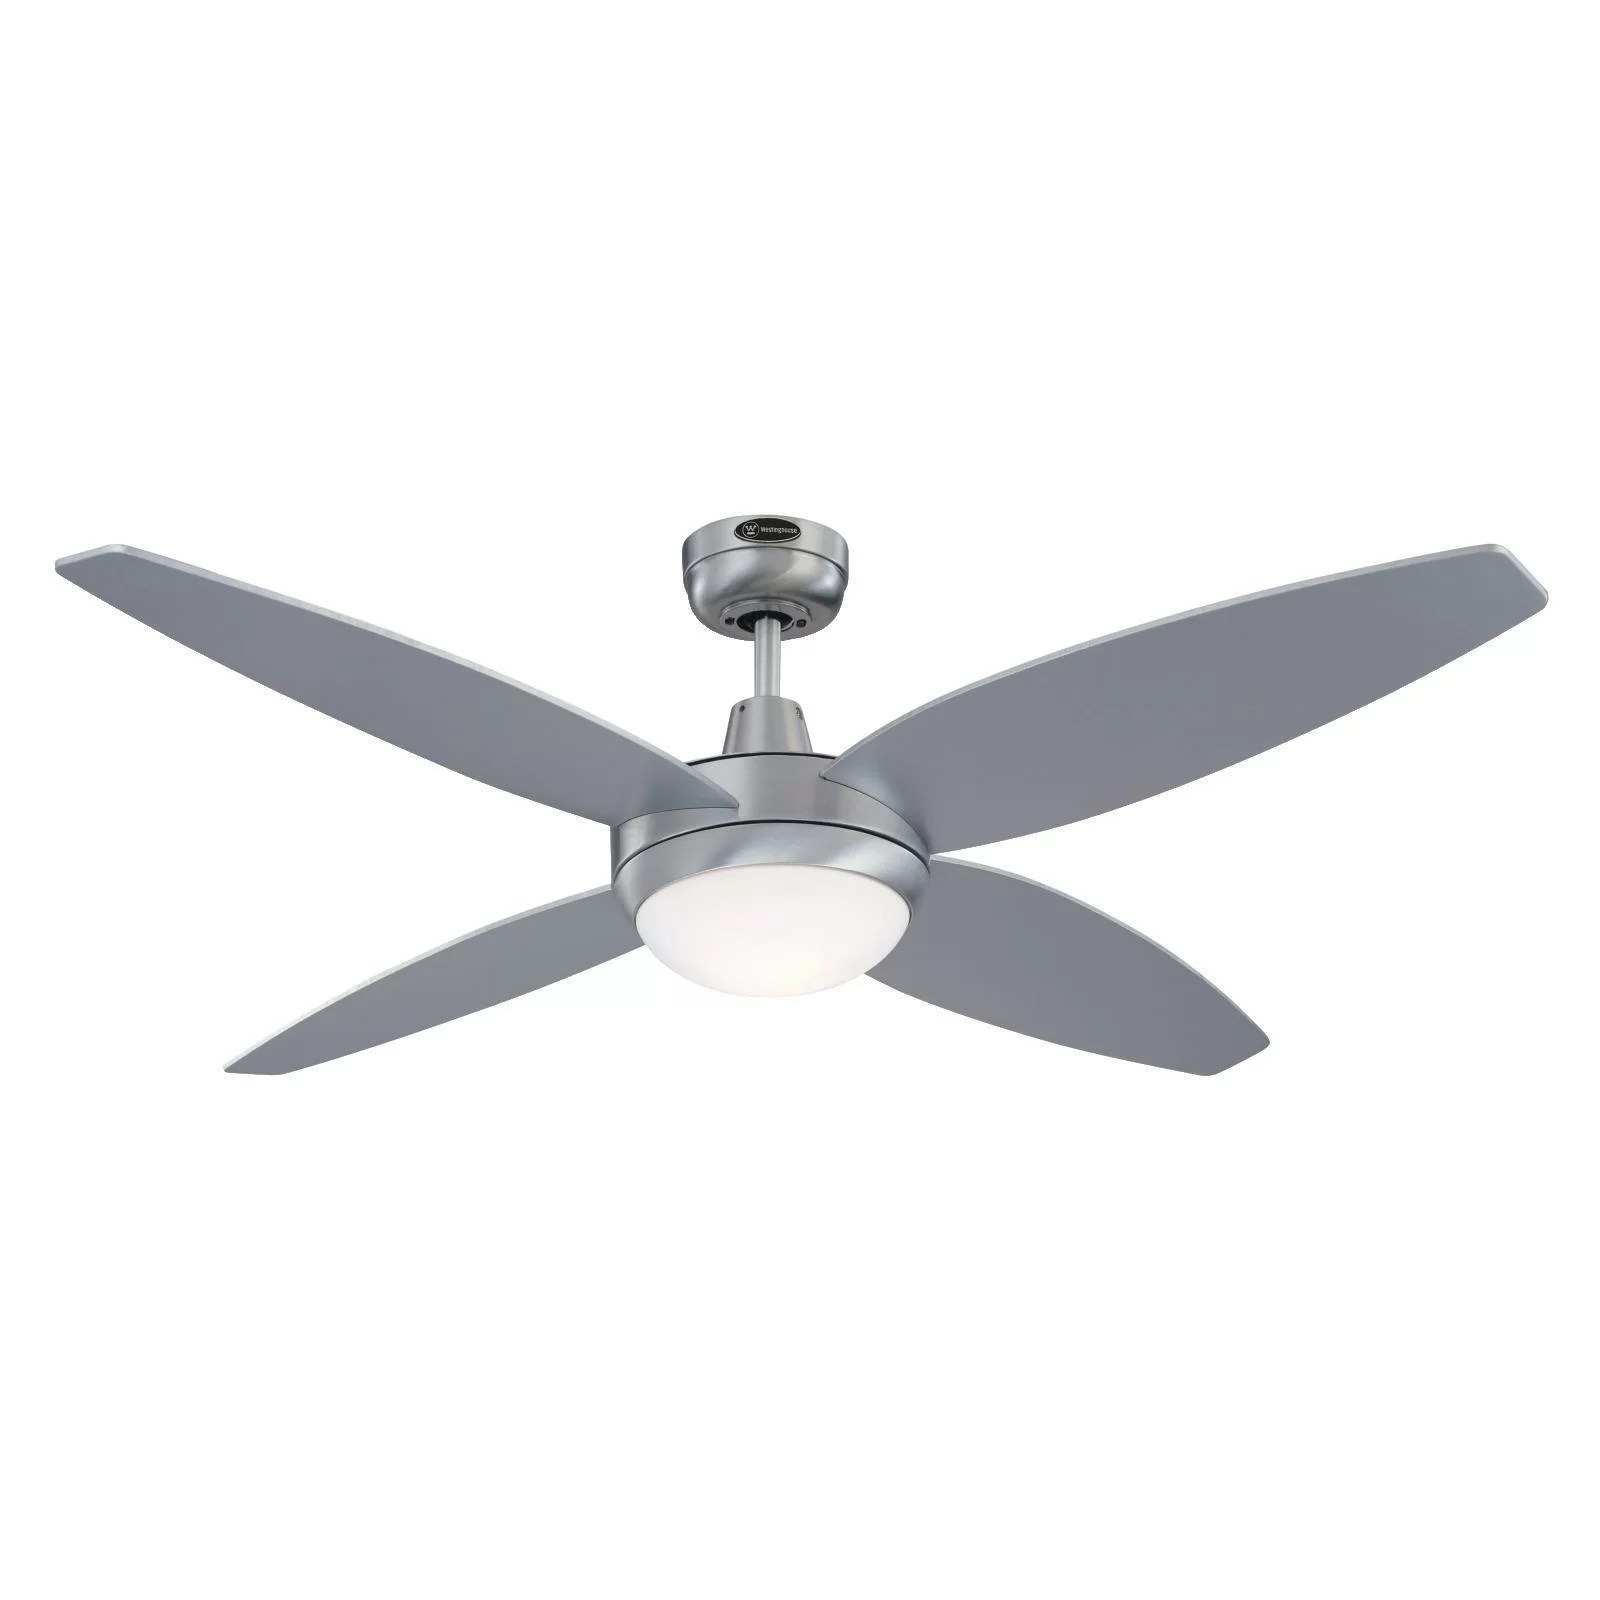 Childrens Ceiling Fans Westinghouse 132cm Havanna 4 Blade Ceiling Fan With Remote